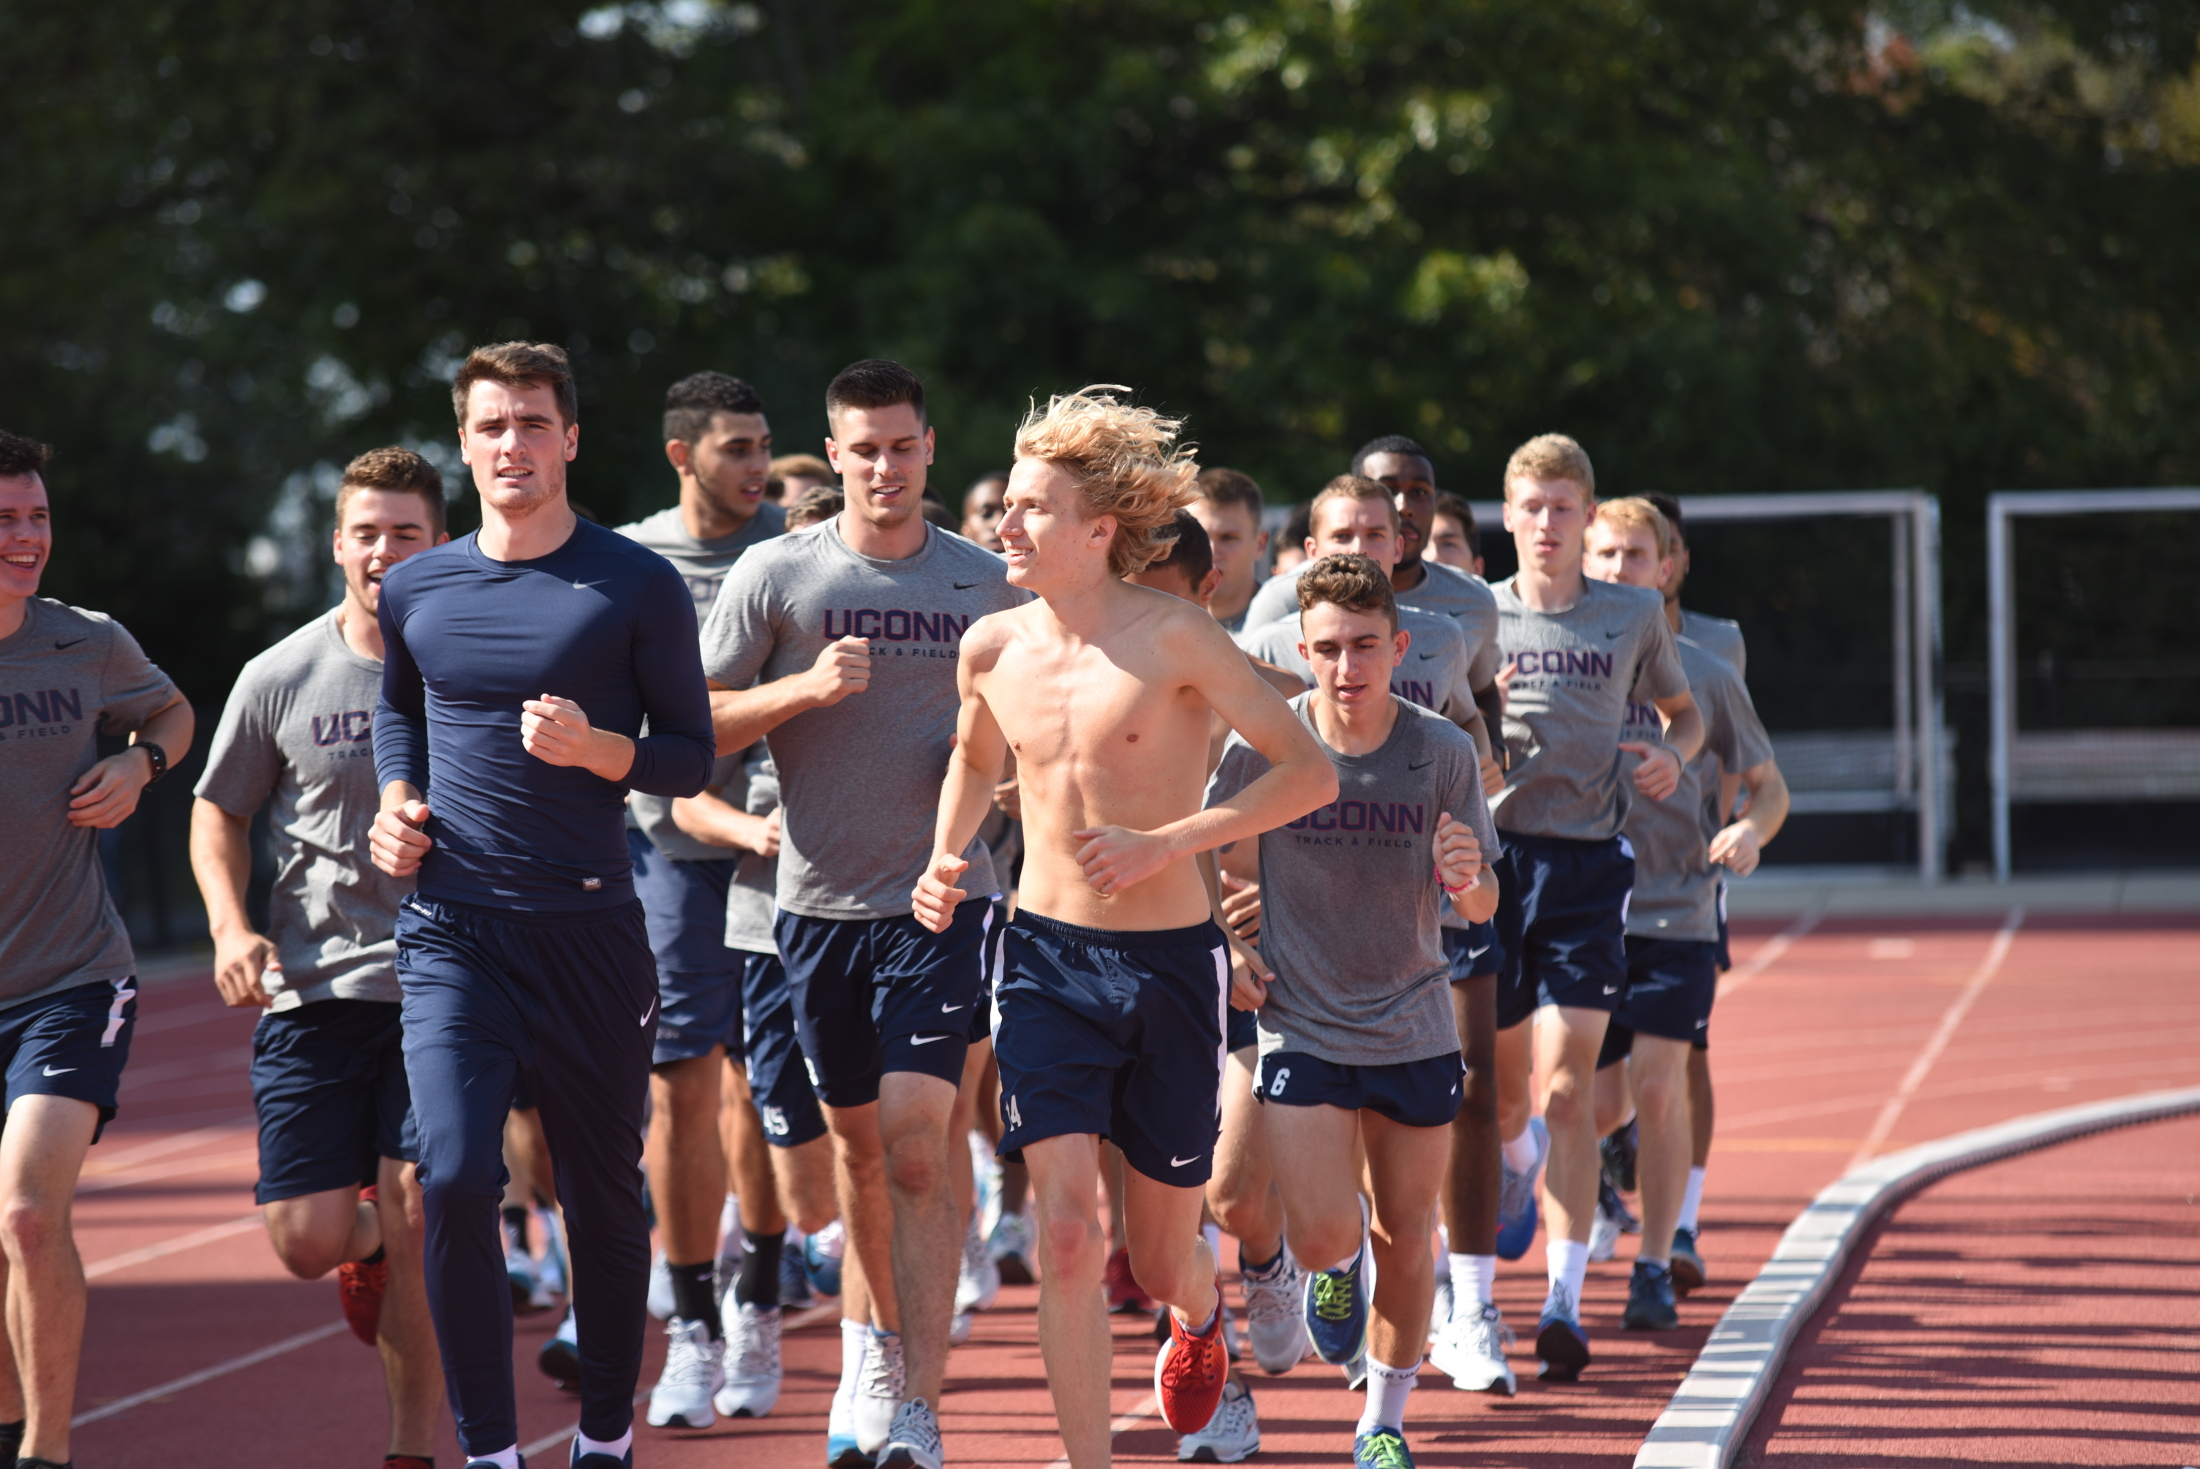 After a historic season for the University of Connecticut in the field of cross country neither the men's nor the women's teams will be heading to Louisville, Kentucky to compete in the NCAA Championships on Nov. 18. (Charlotte Lao/The Daily Campus)